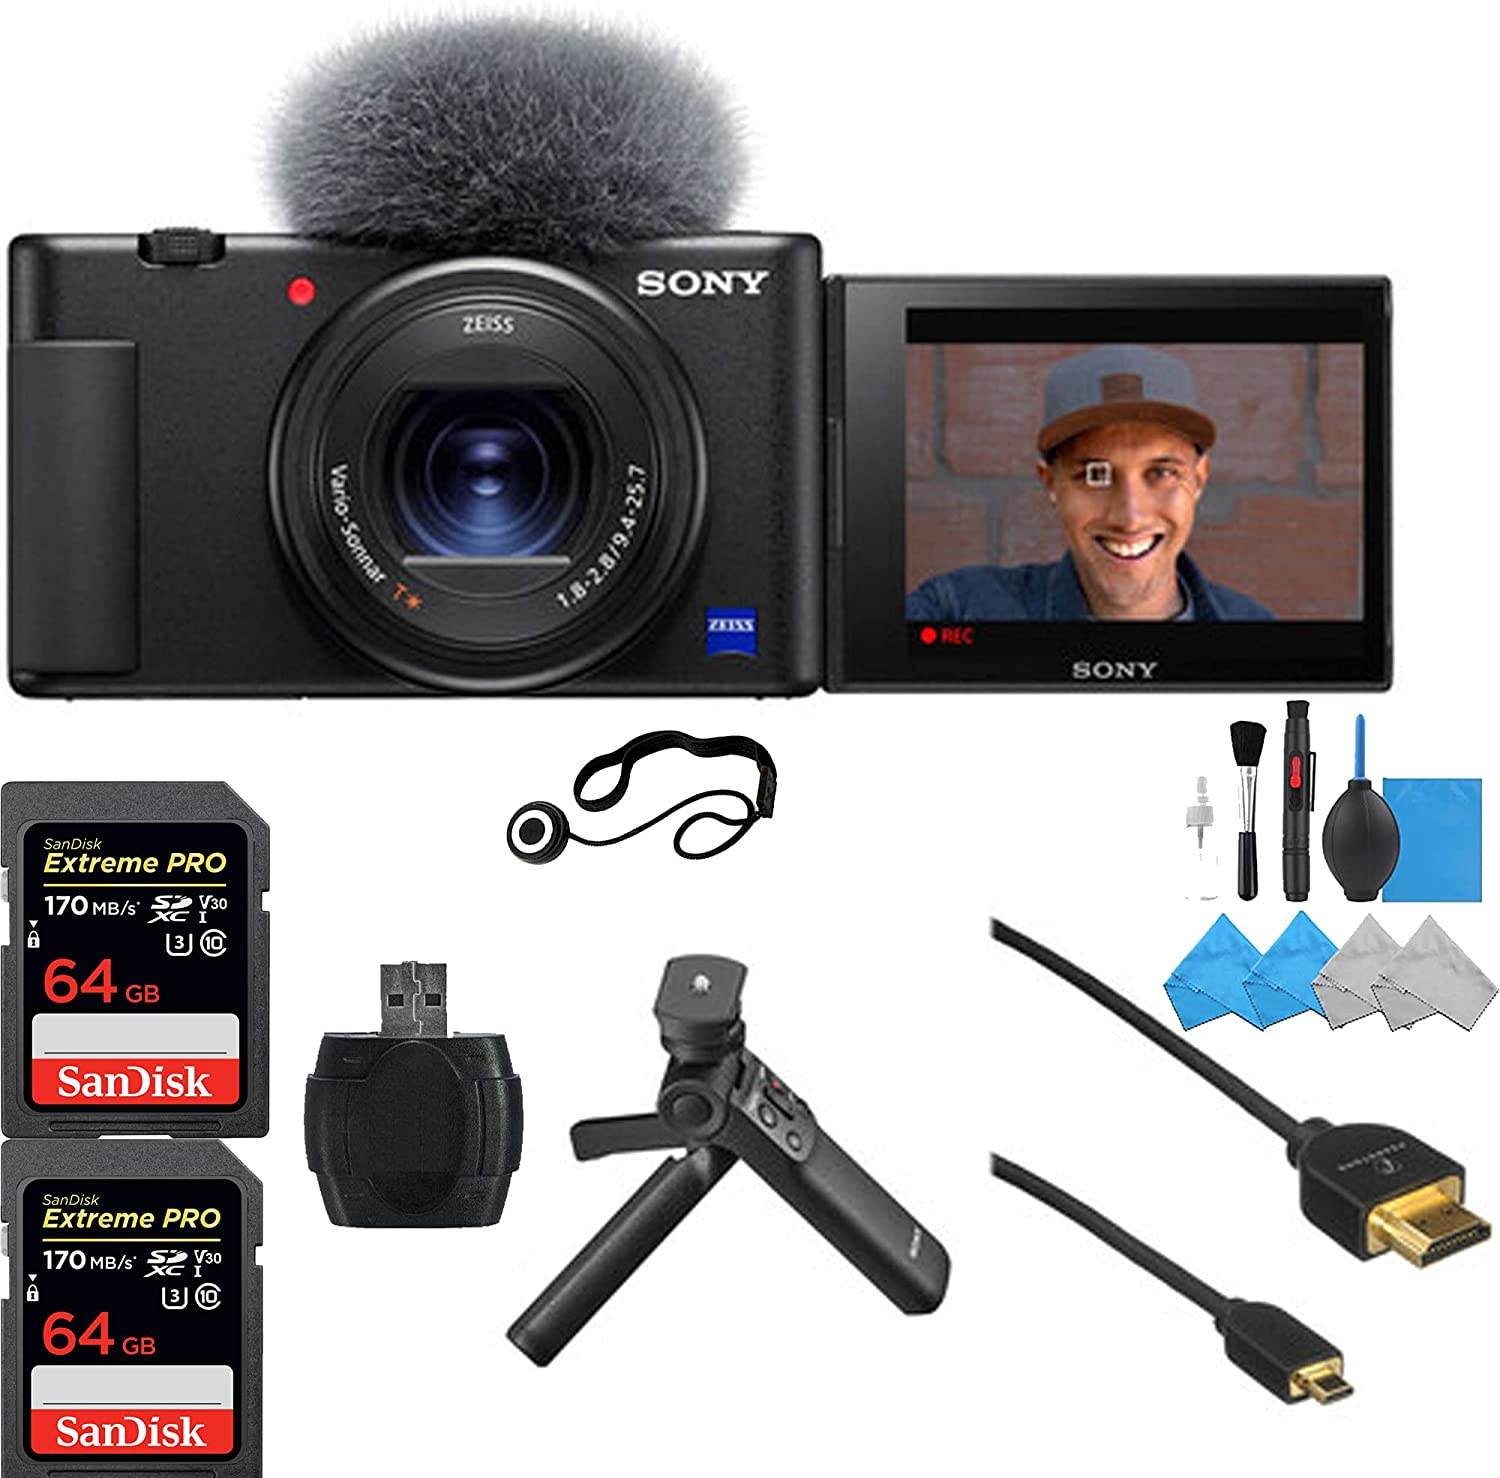 Sony ZV-1 Digital Camera with 2X 64GB Ranking TOP3 Memory Cheap sale Pro Extreme Sandisk